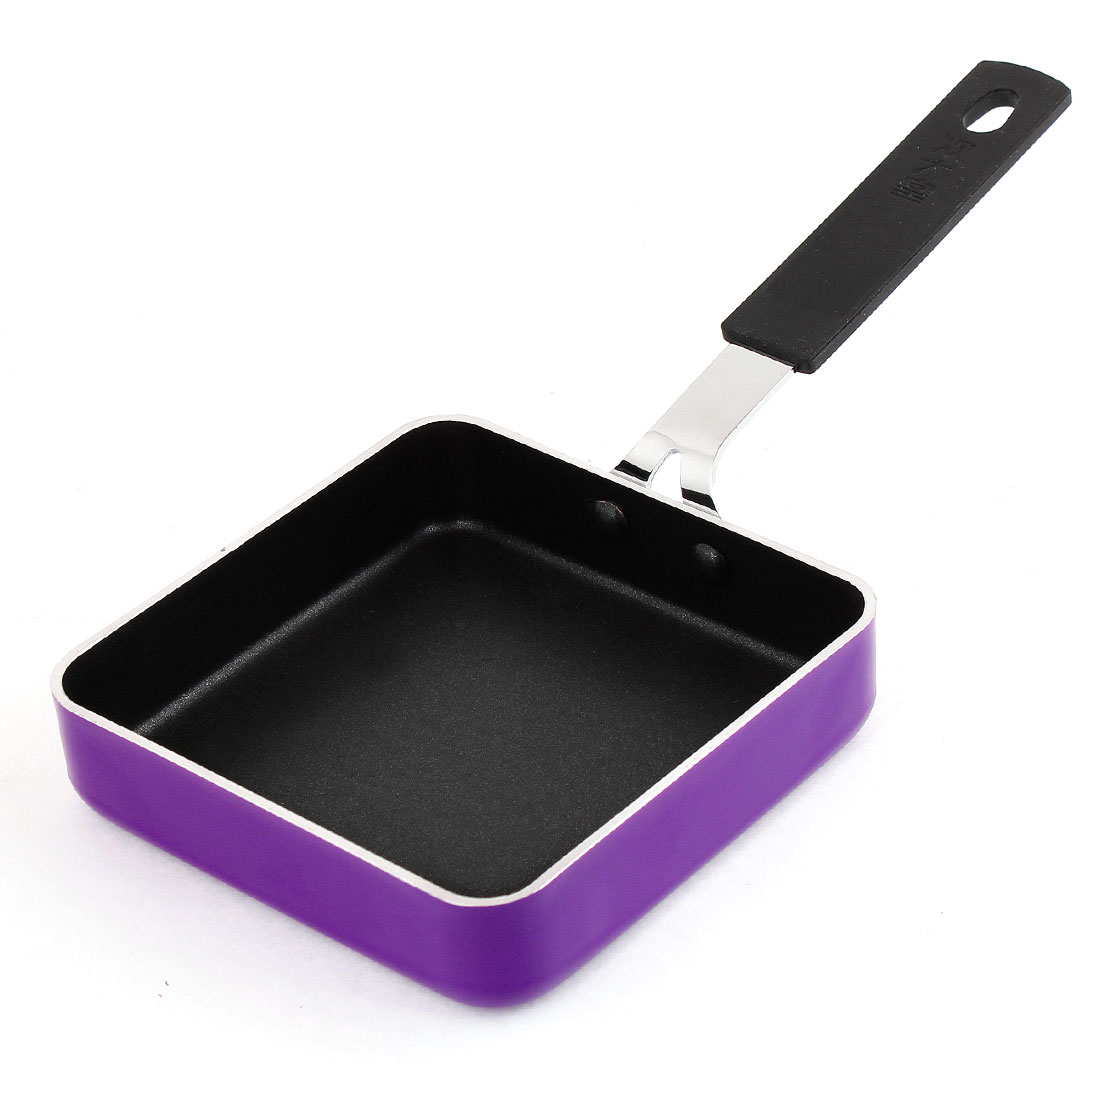 Home Cooker Tool Black Handle Purple Square Non-cohesive Egg Cook Frying Pan